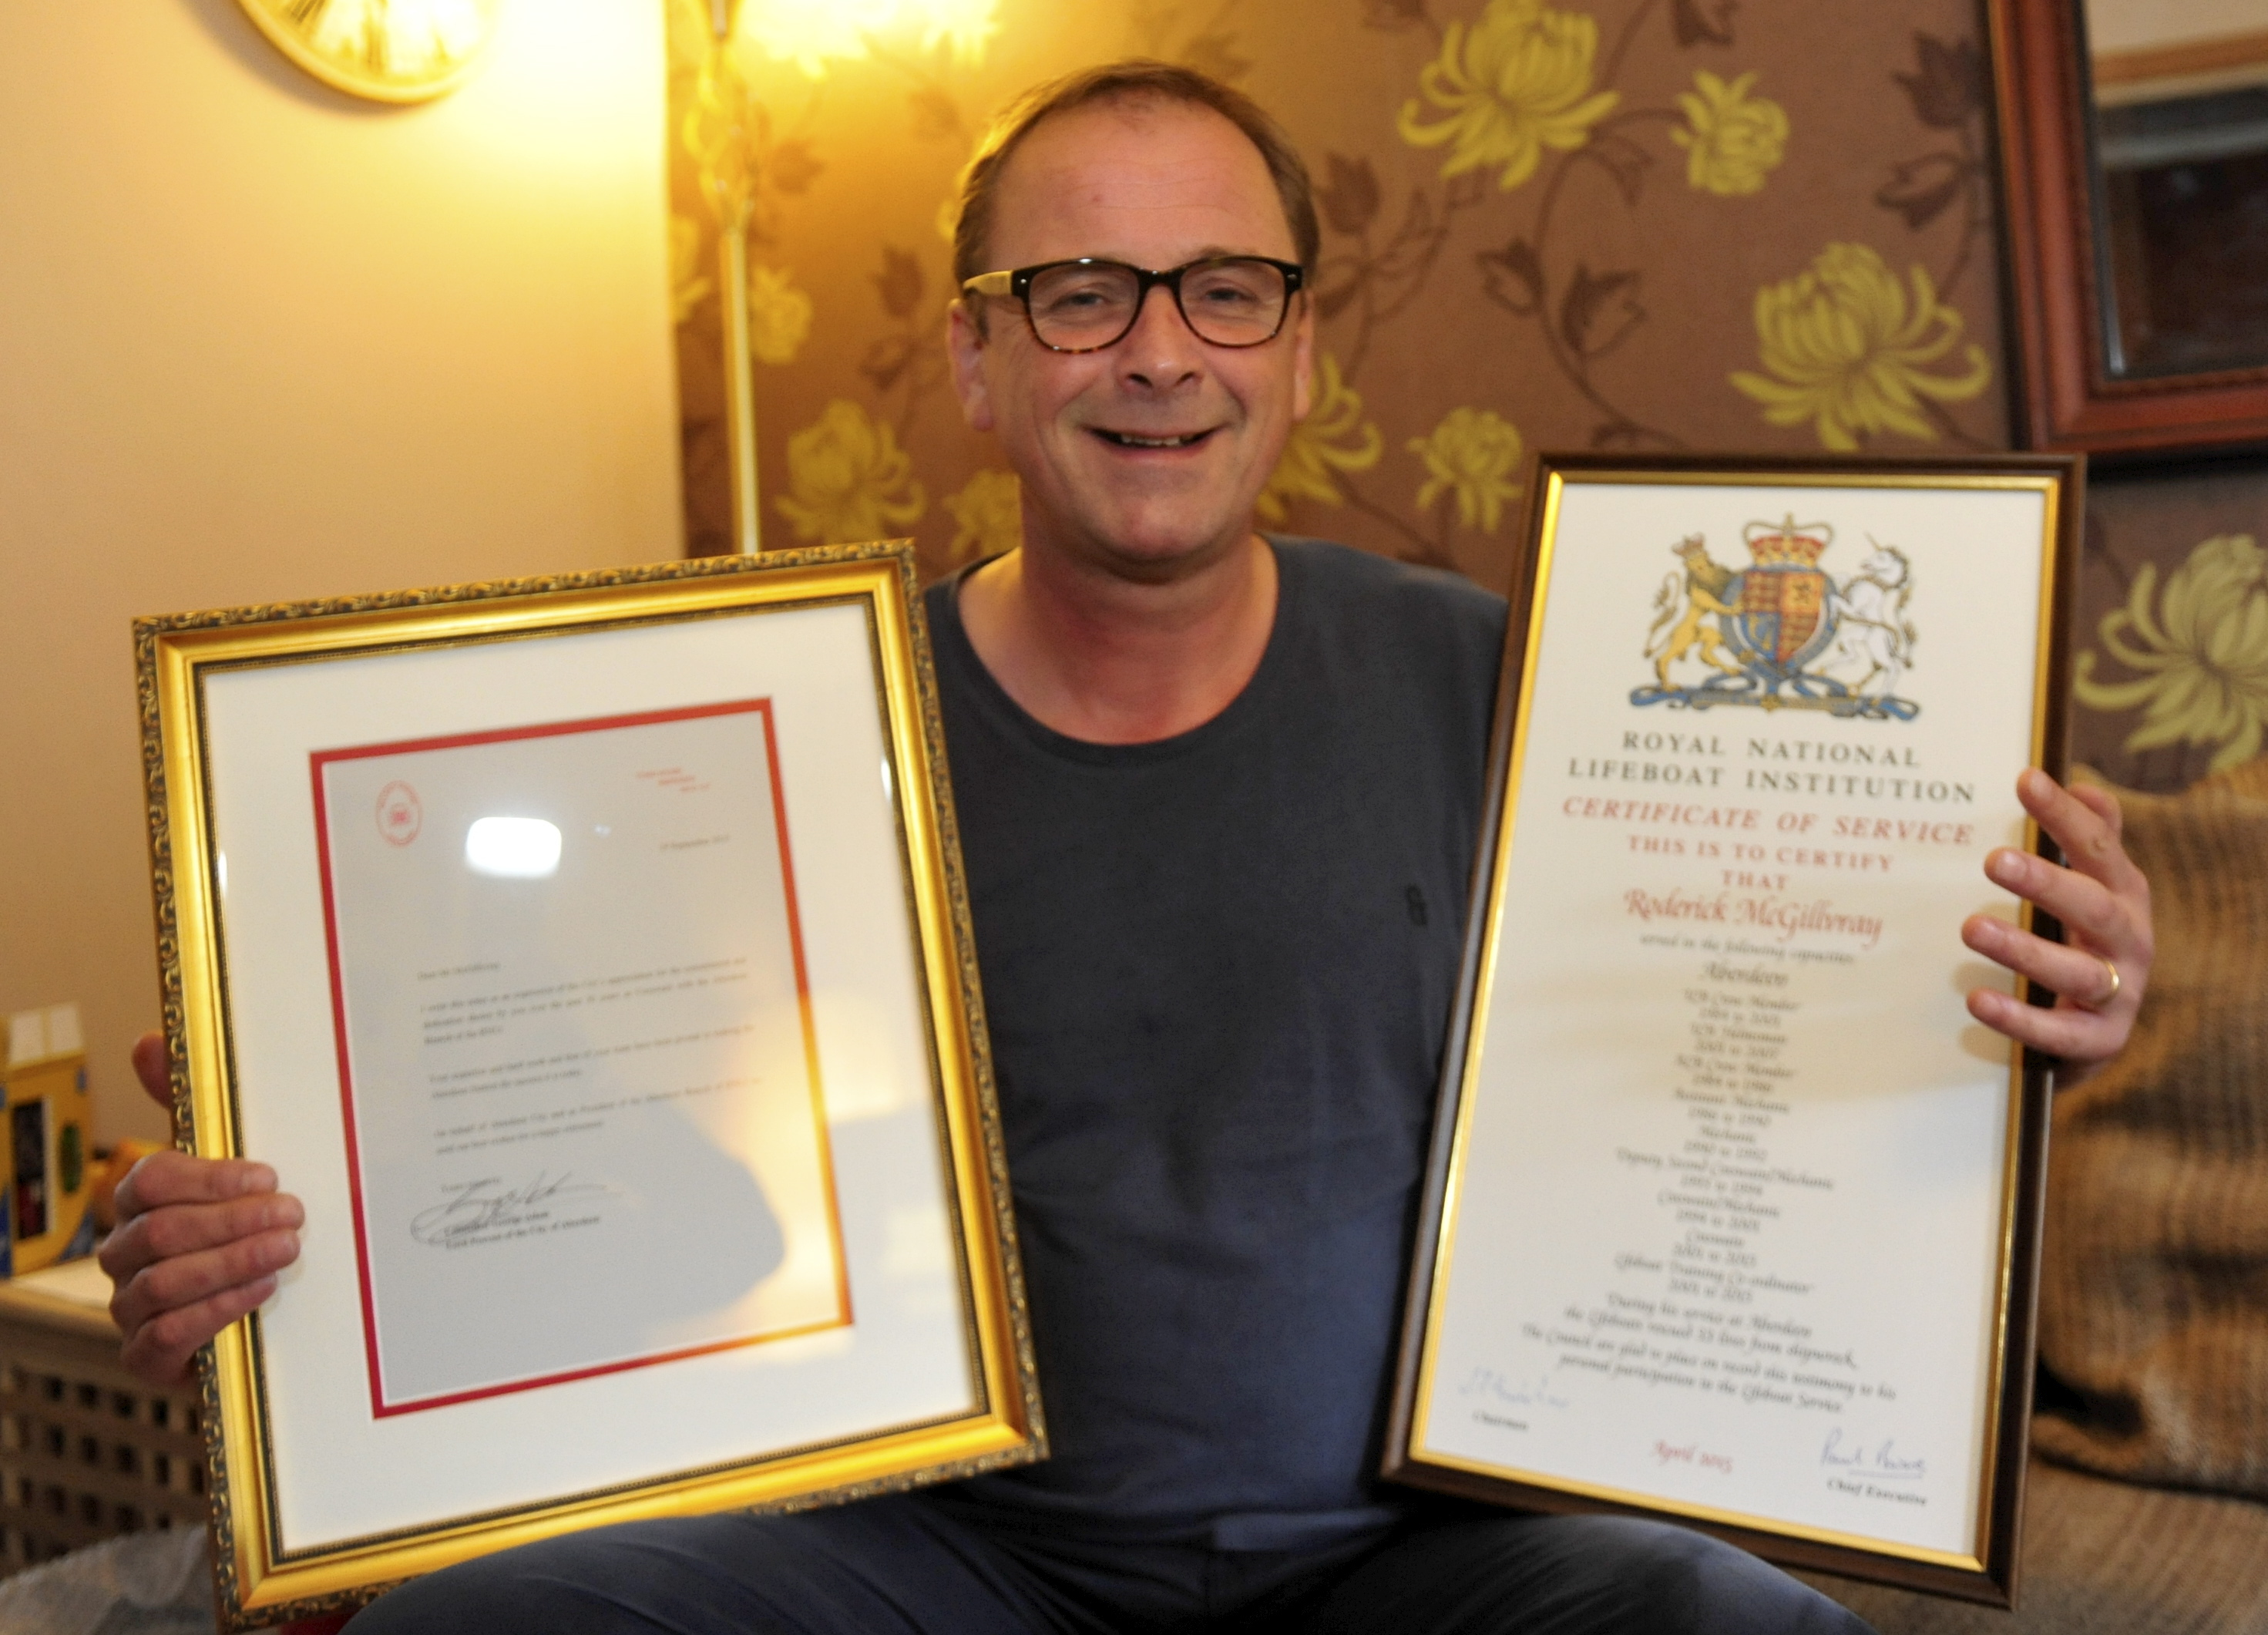 Rod with his service awards